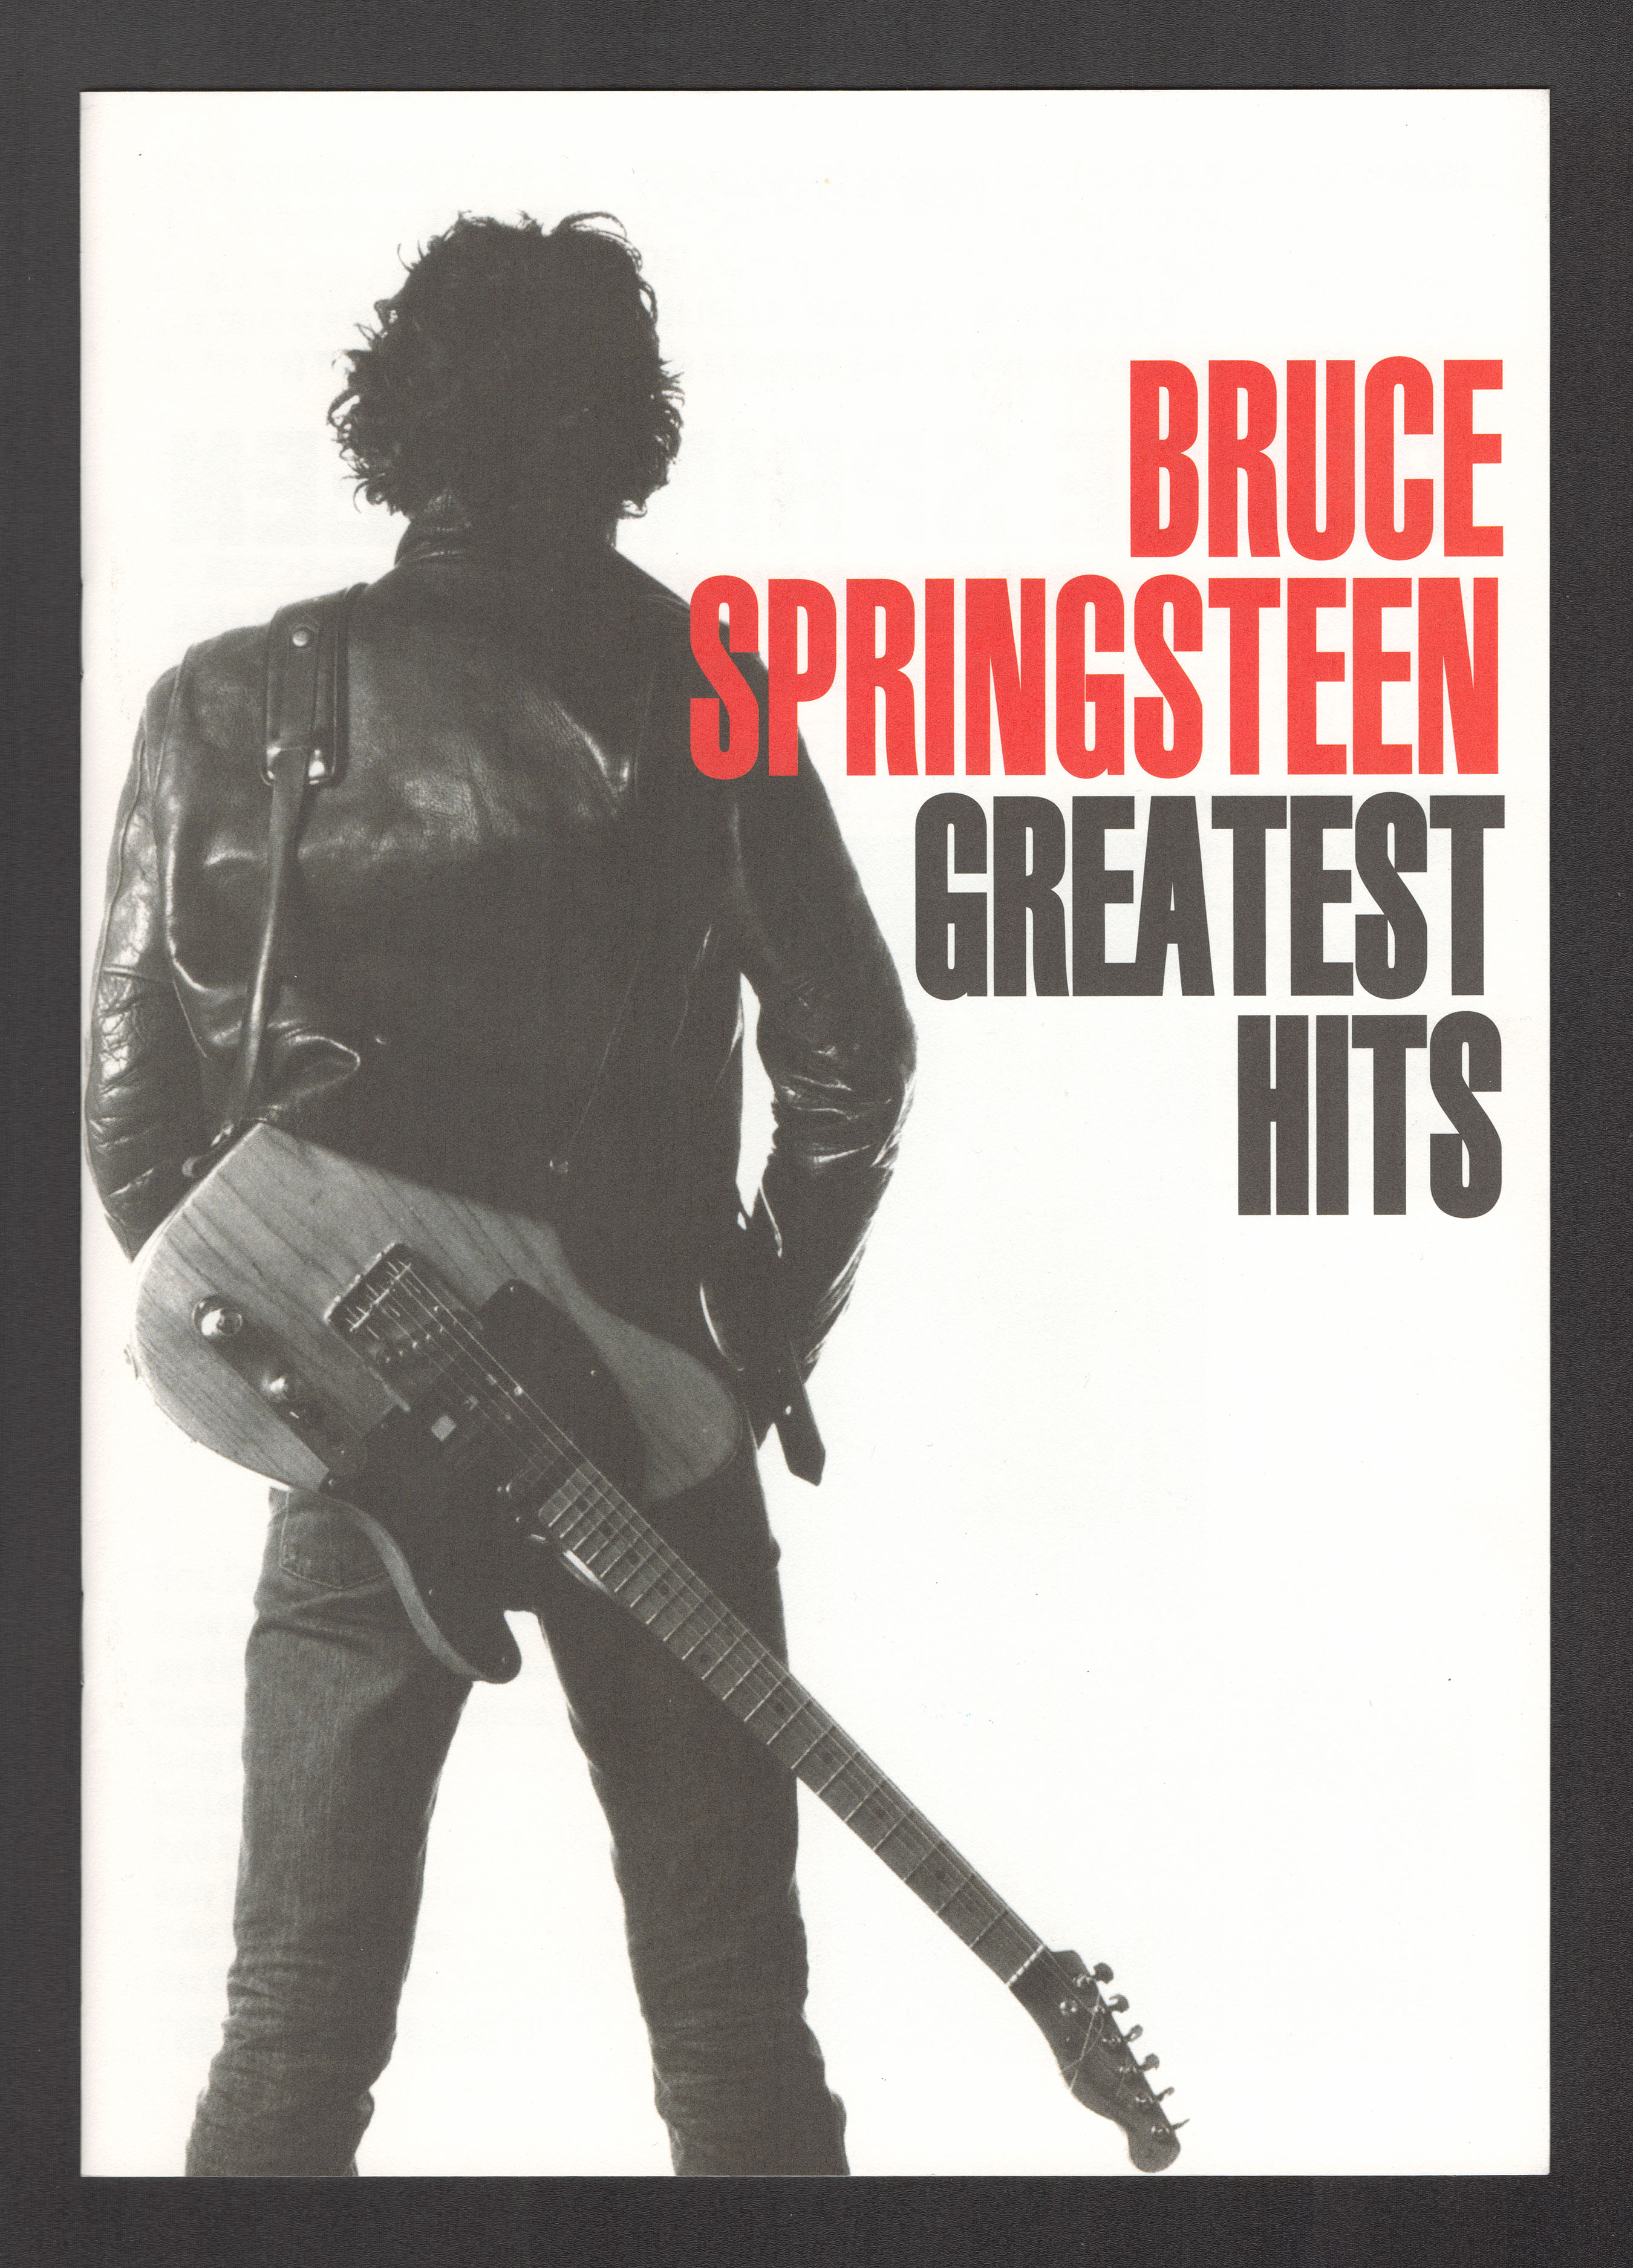 Bruce Springsteen Collection Greatest Hits Promo Box Set